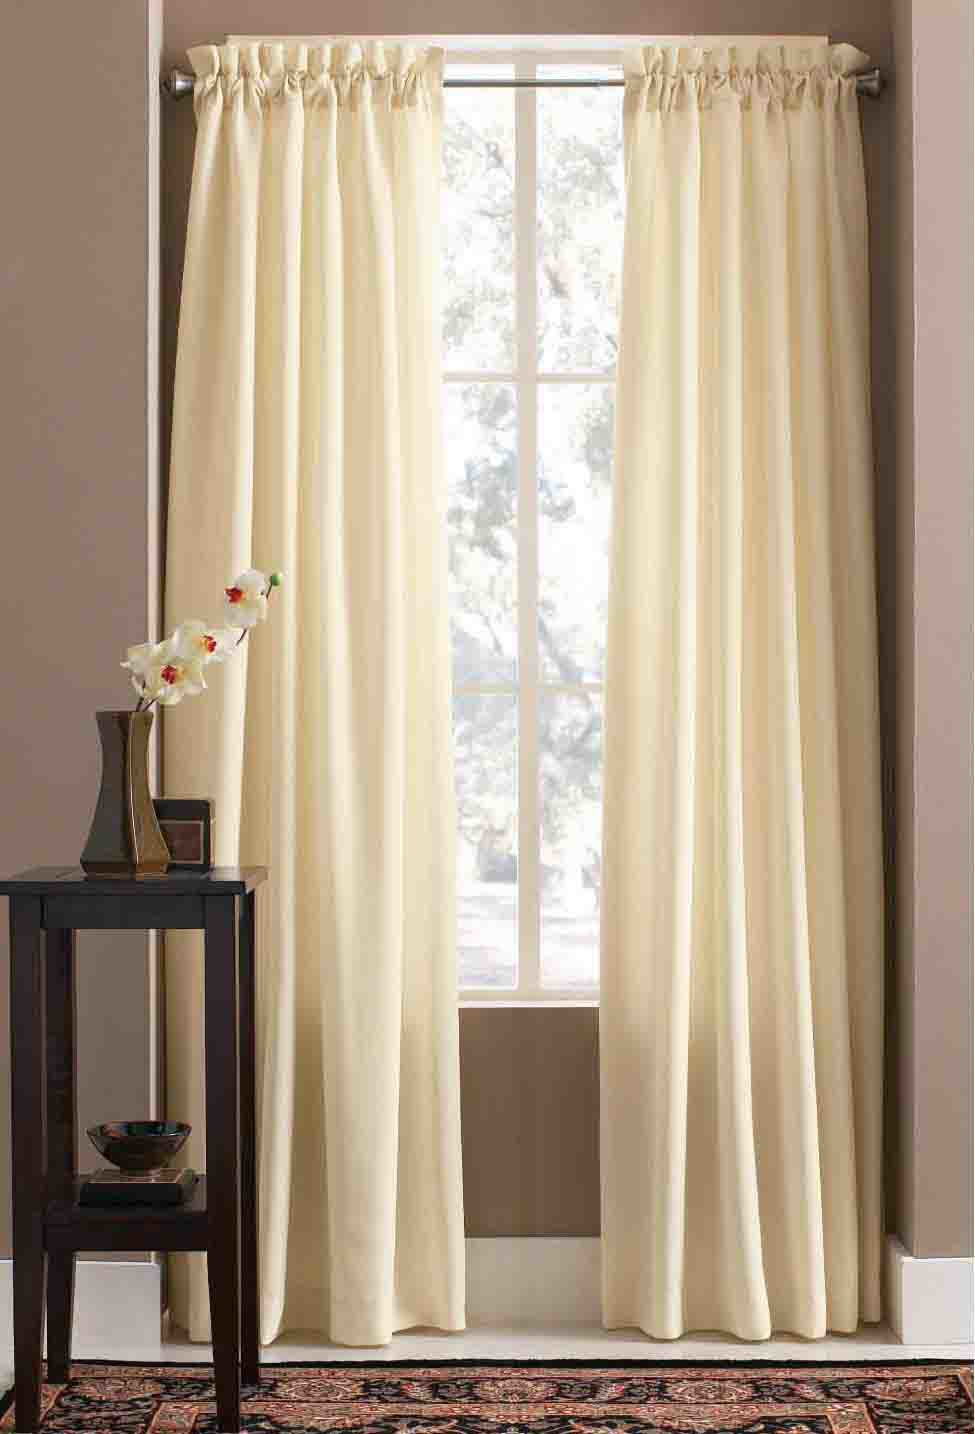 Http Www Made In China Com Showroom Hifiej455 Product Detailpognhqtuuzvi China Pole Top Curtain 08003 Html